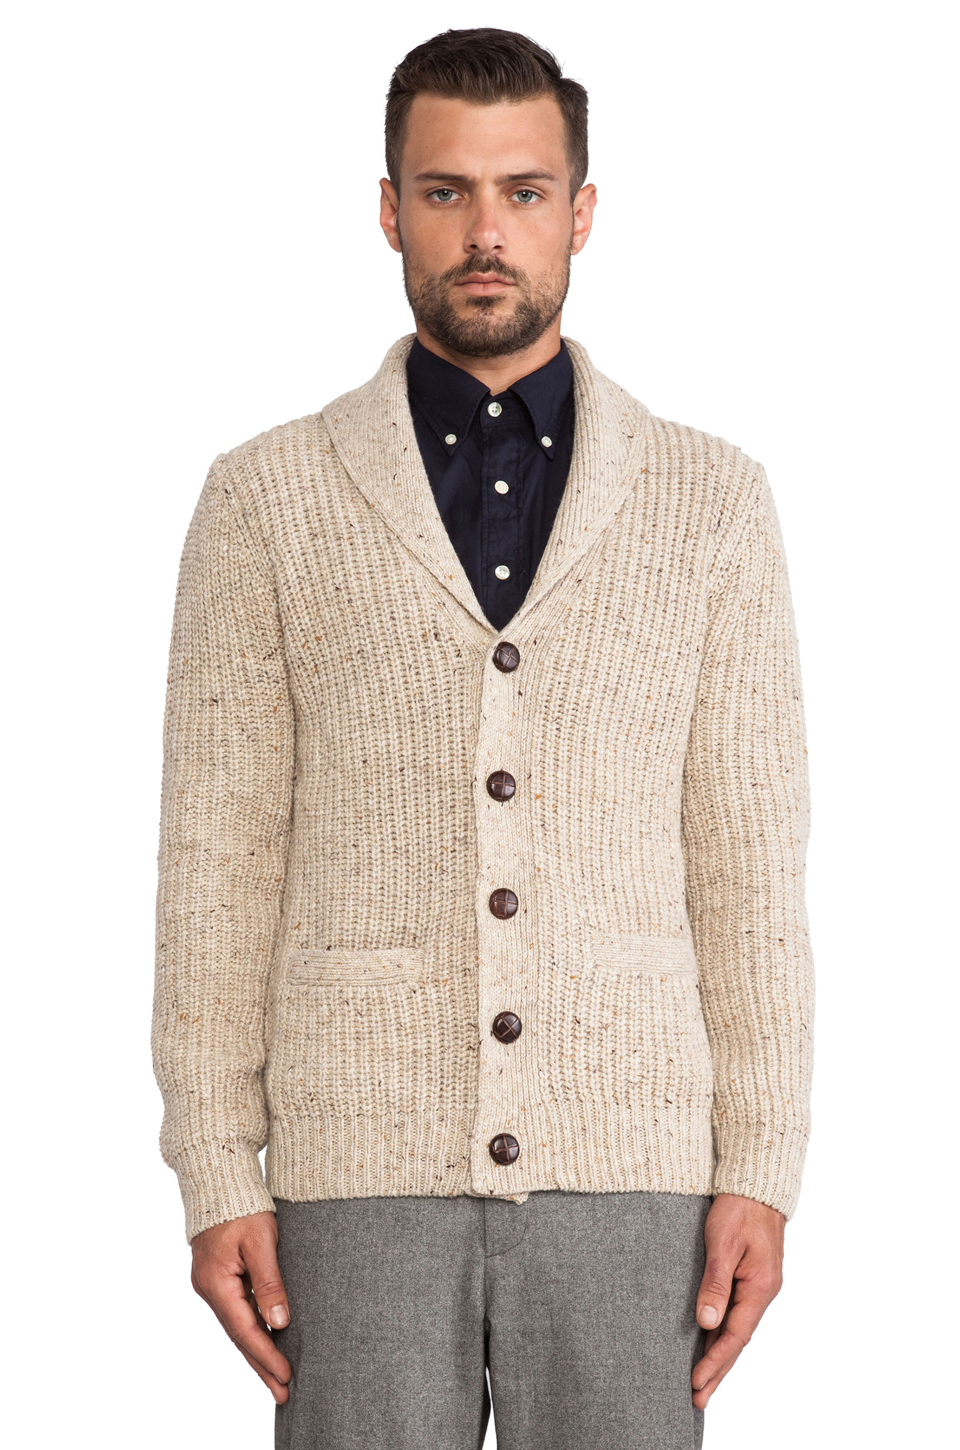 Roll Neck Sweater Mens